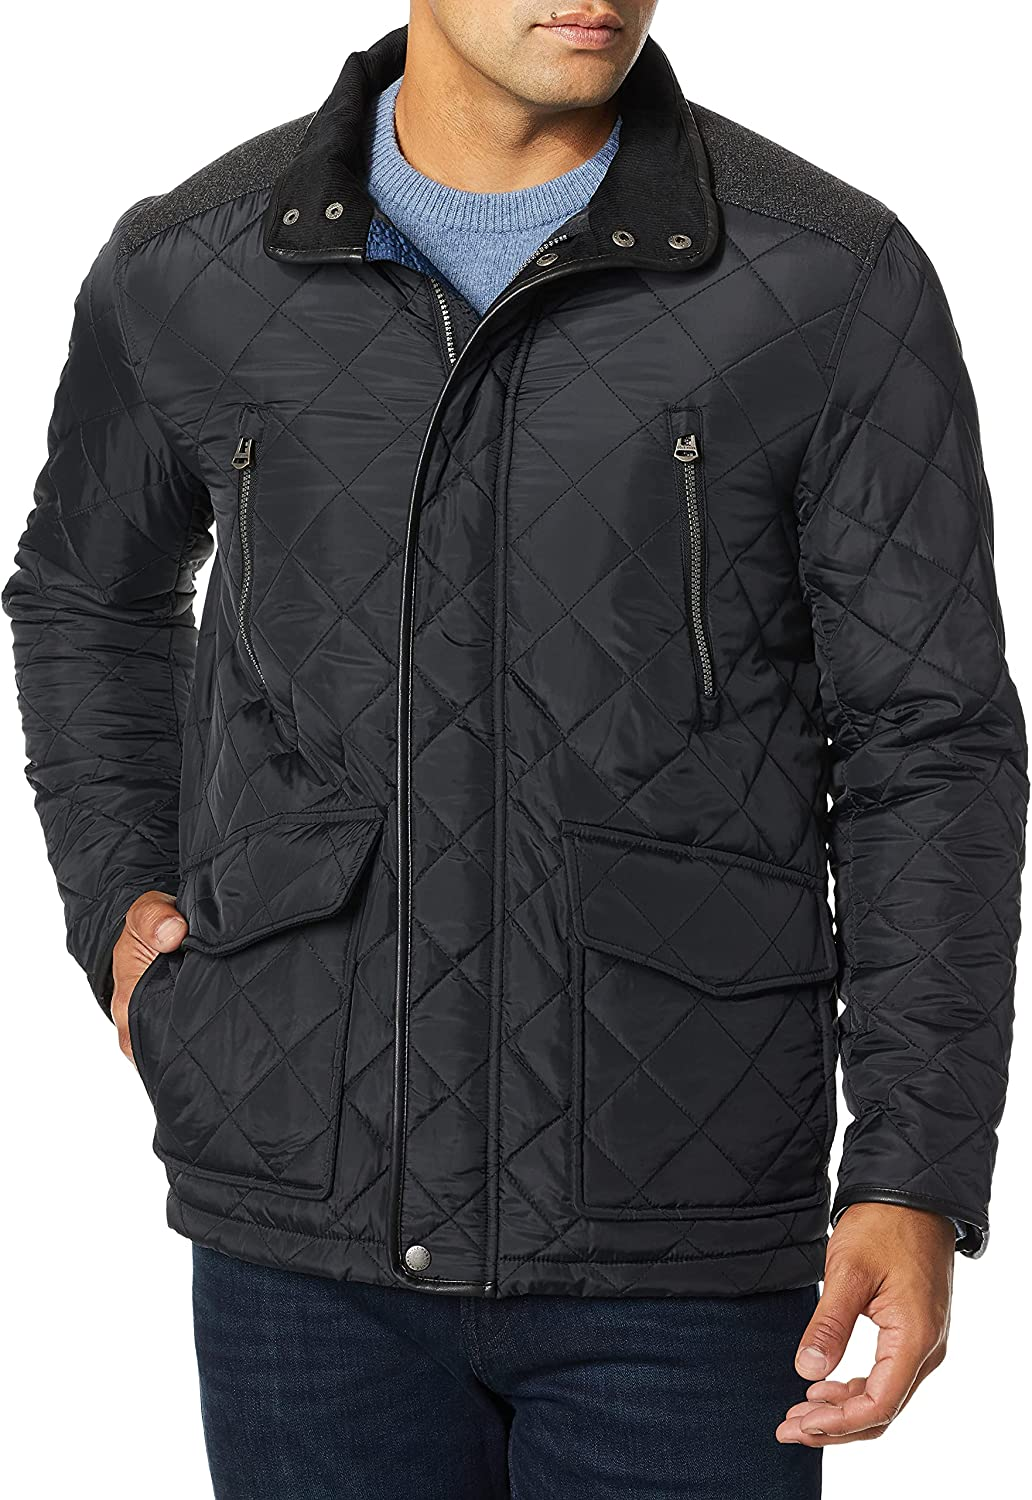 Cole Haan Men's Quilted Jacket with Corduroy Collar